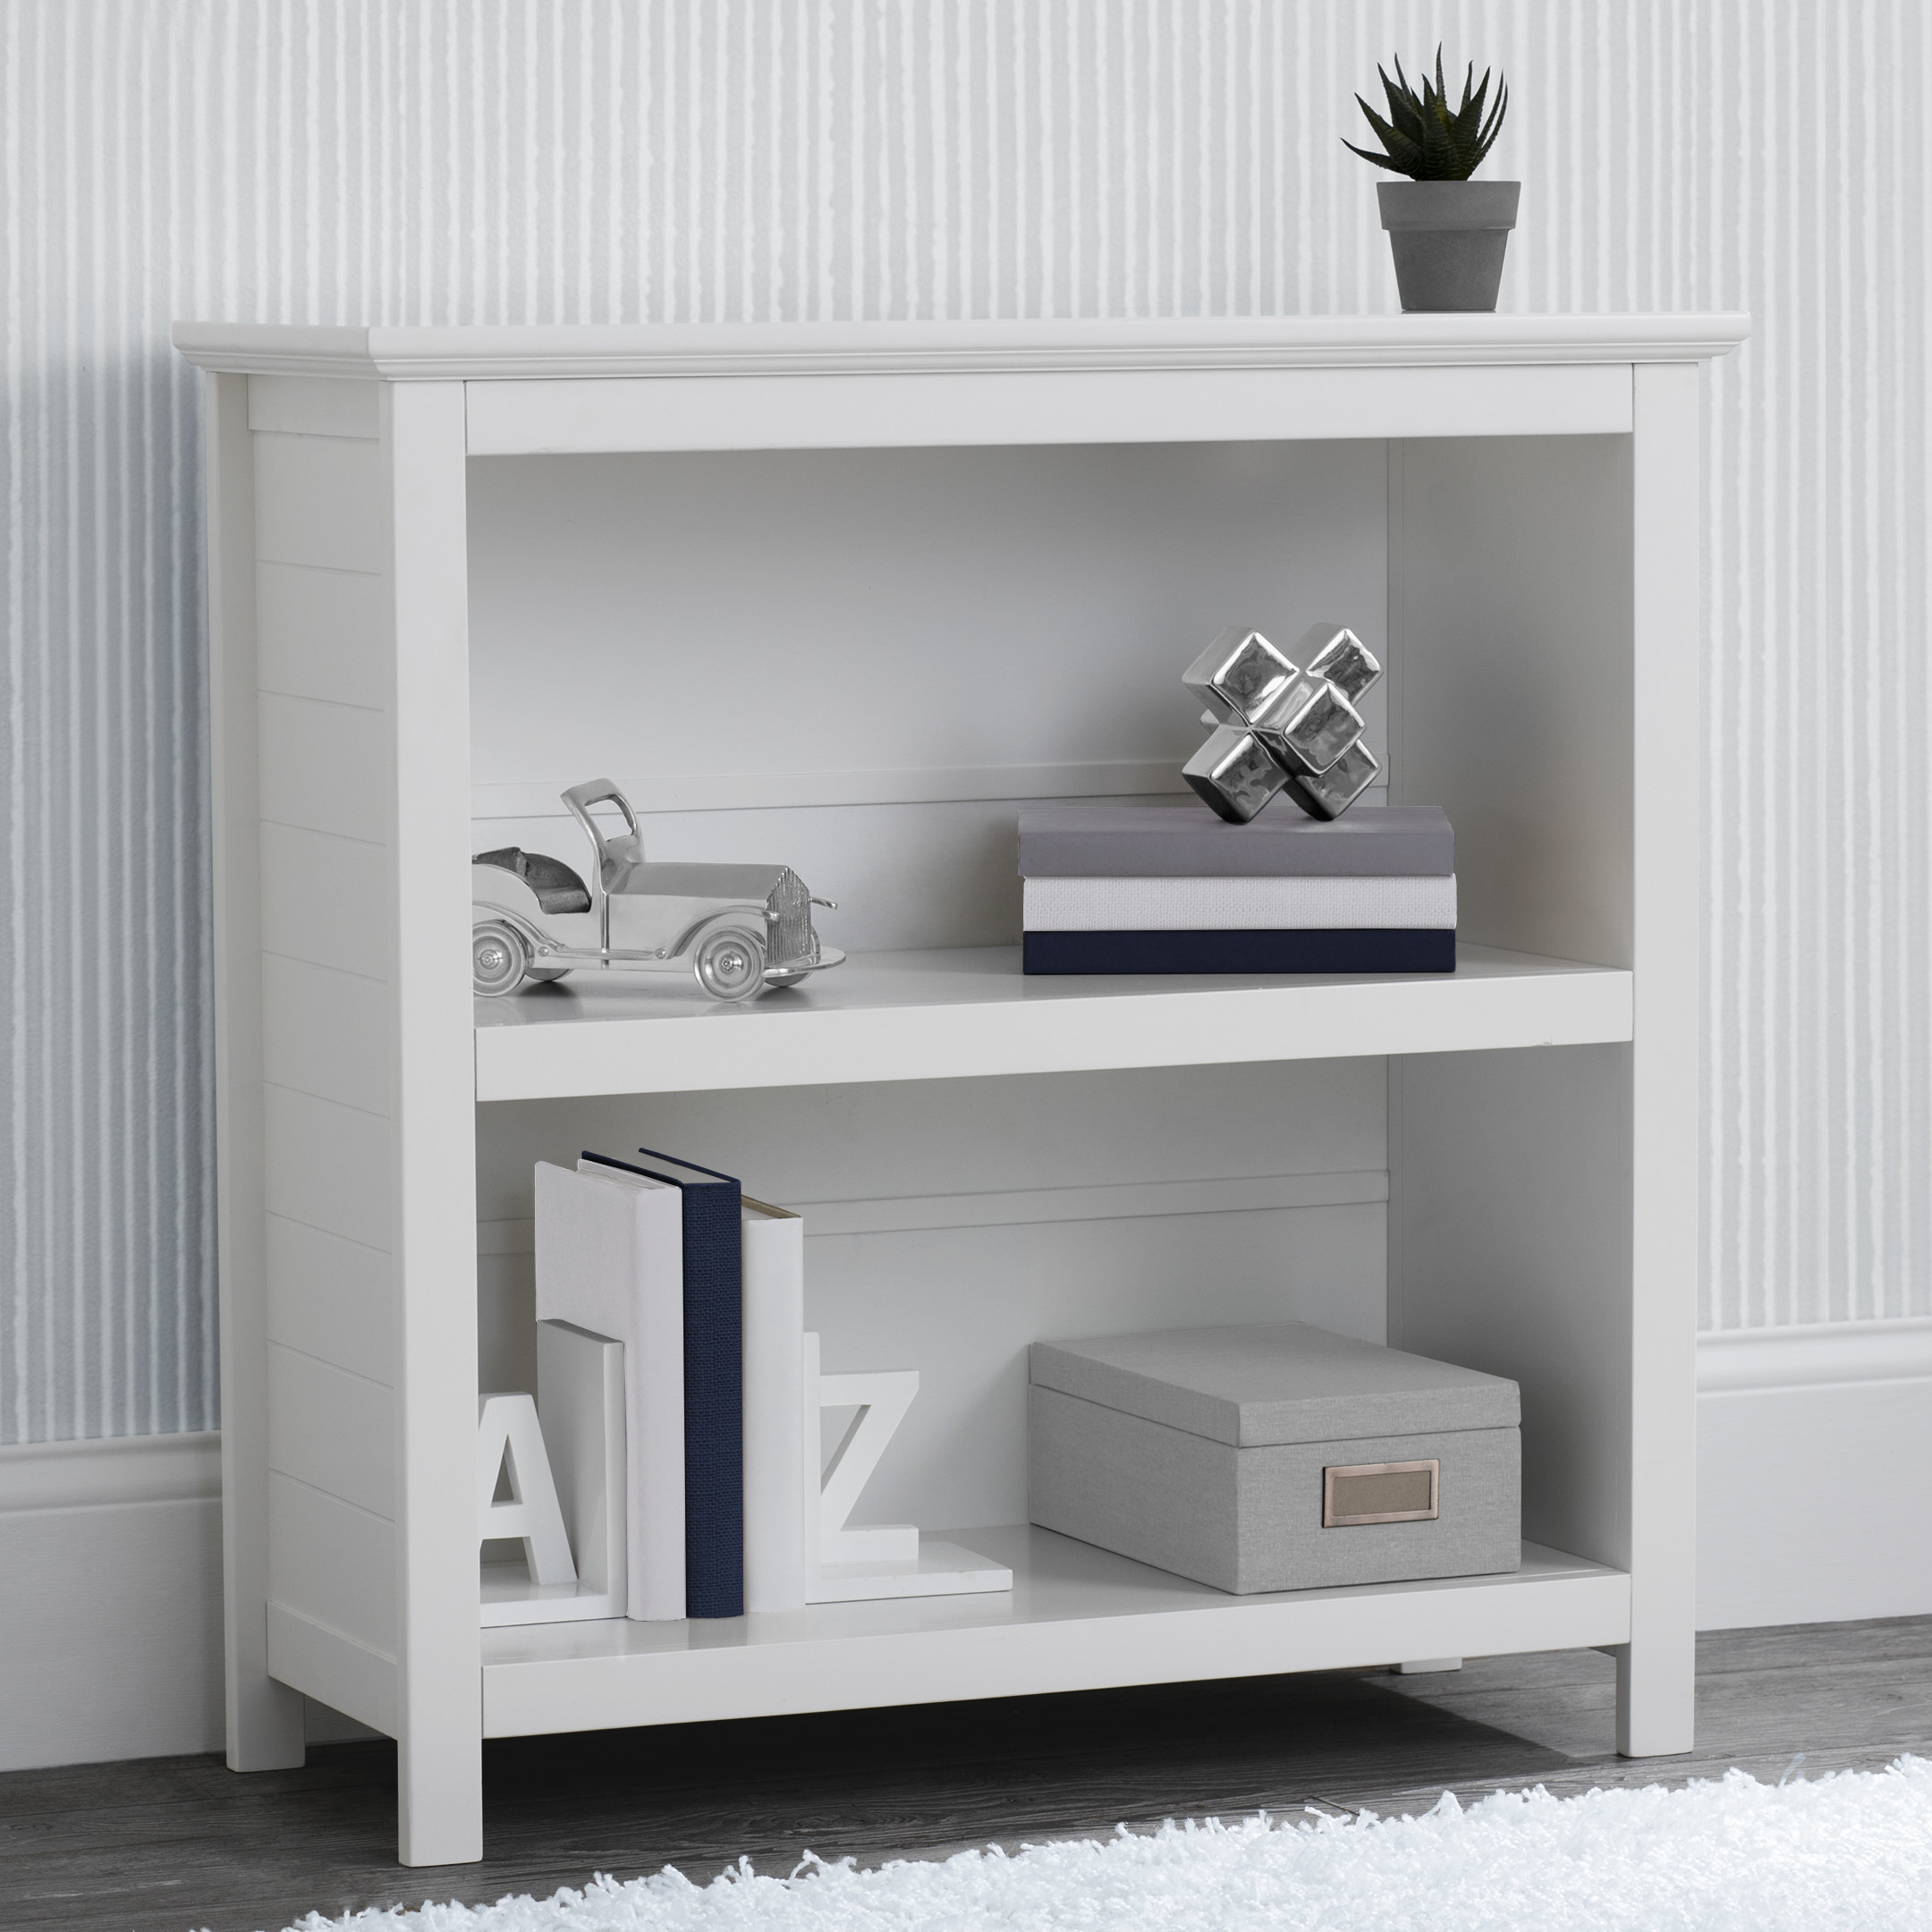 white better homes and gardens bookcase with knick knacks on it